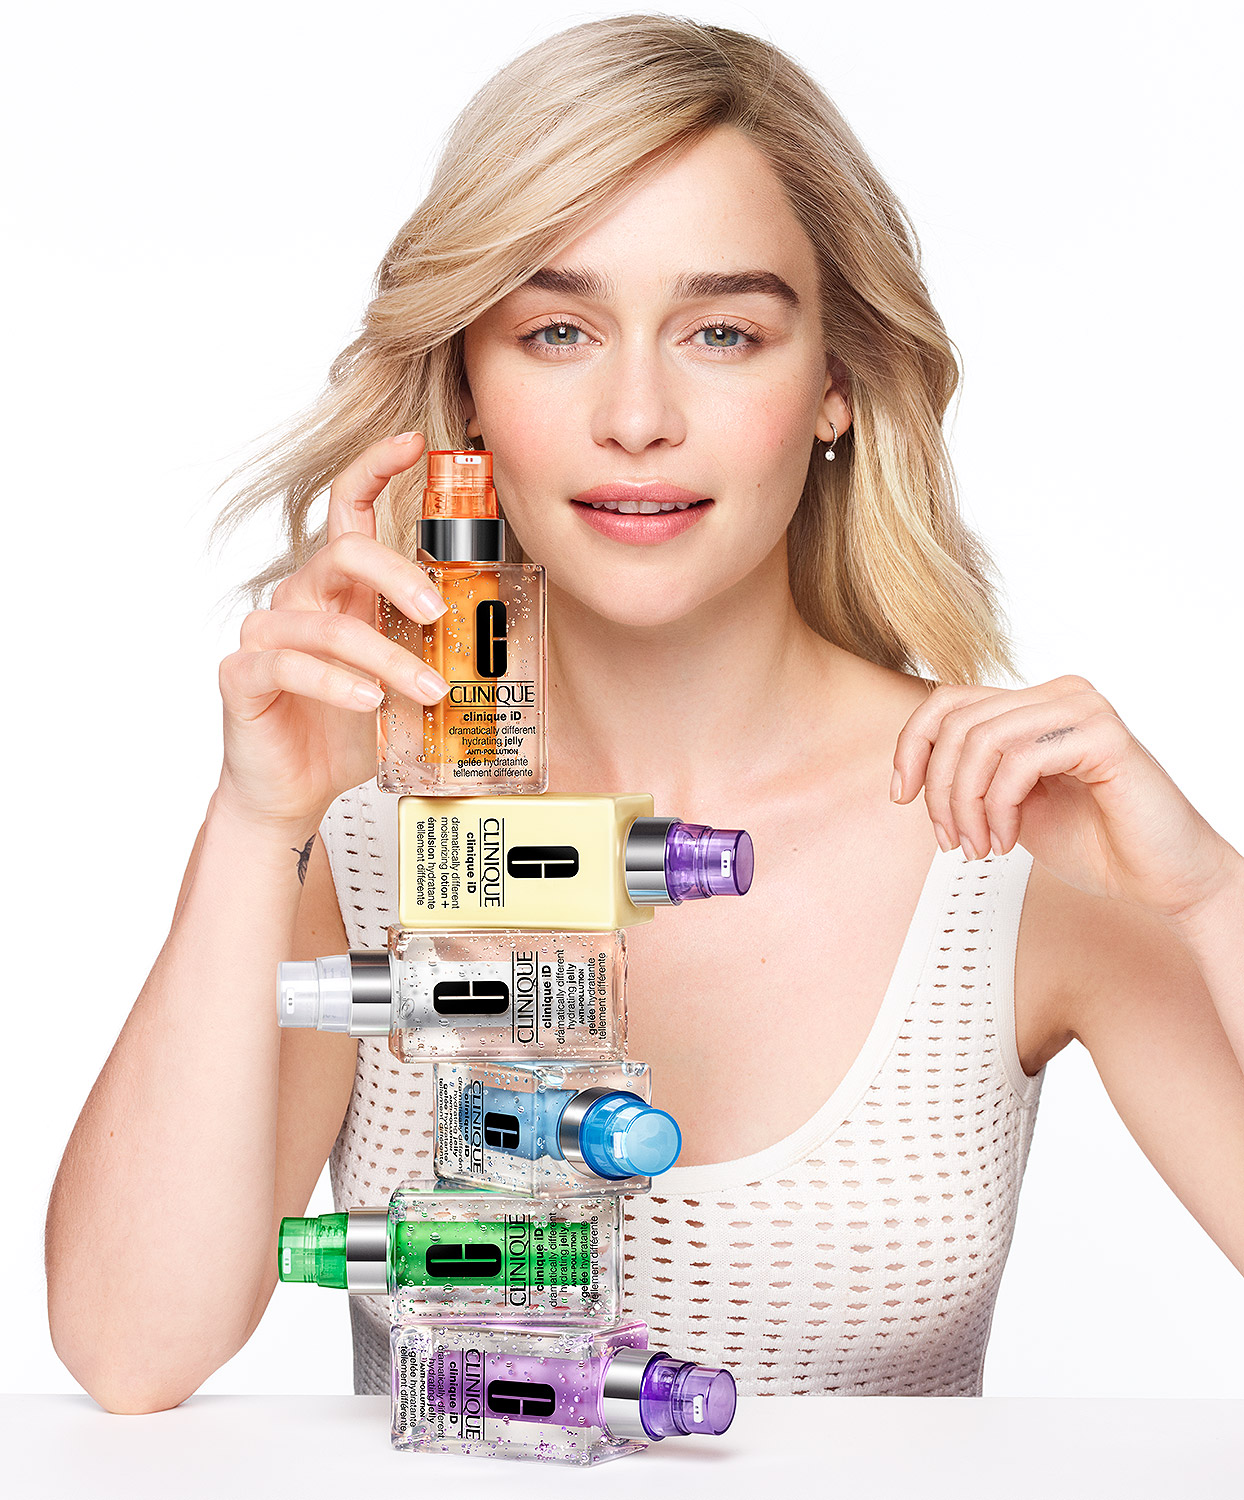 Emilia Clarke for Clinique